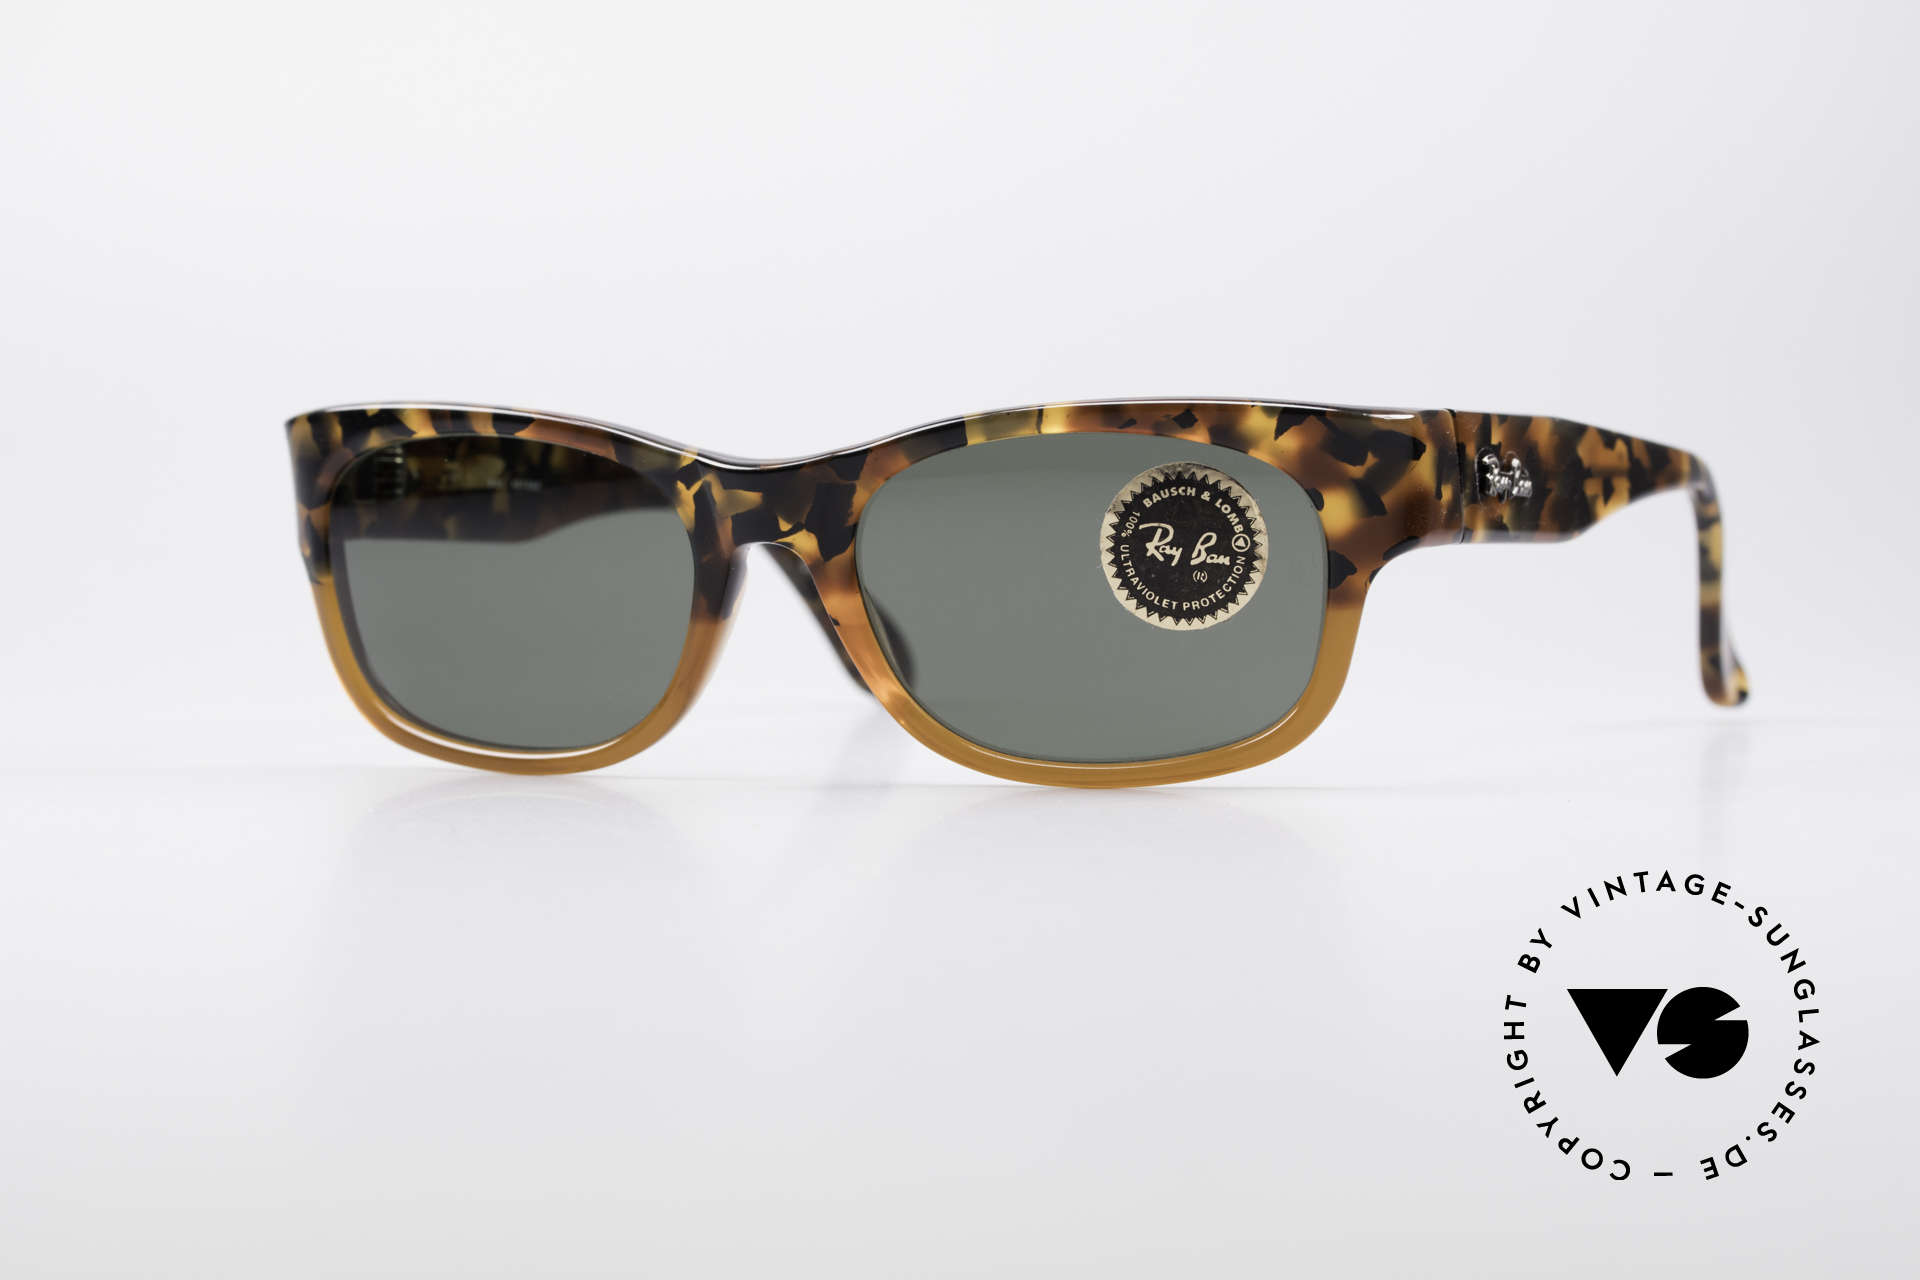 Ray Ban Bohemian Bausch & Lomb USA Glasses, classic Ray Ban sunglasses from the early 90s, Made for Men and Women